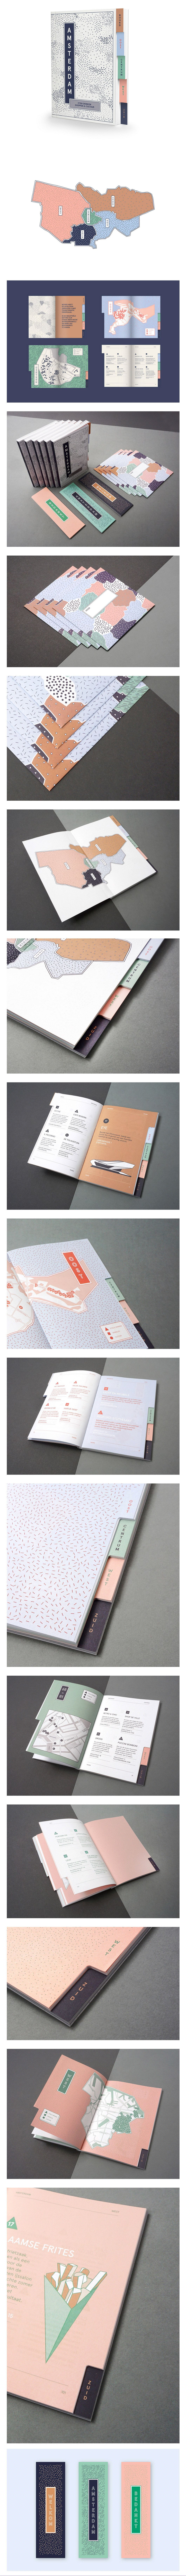 I like the tab detail on the side of the booklet could be useful for separating the process into manageable pieces.